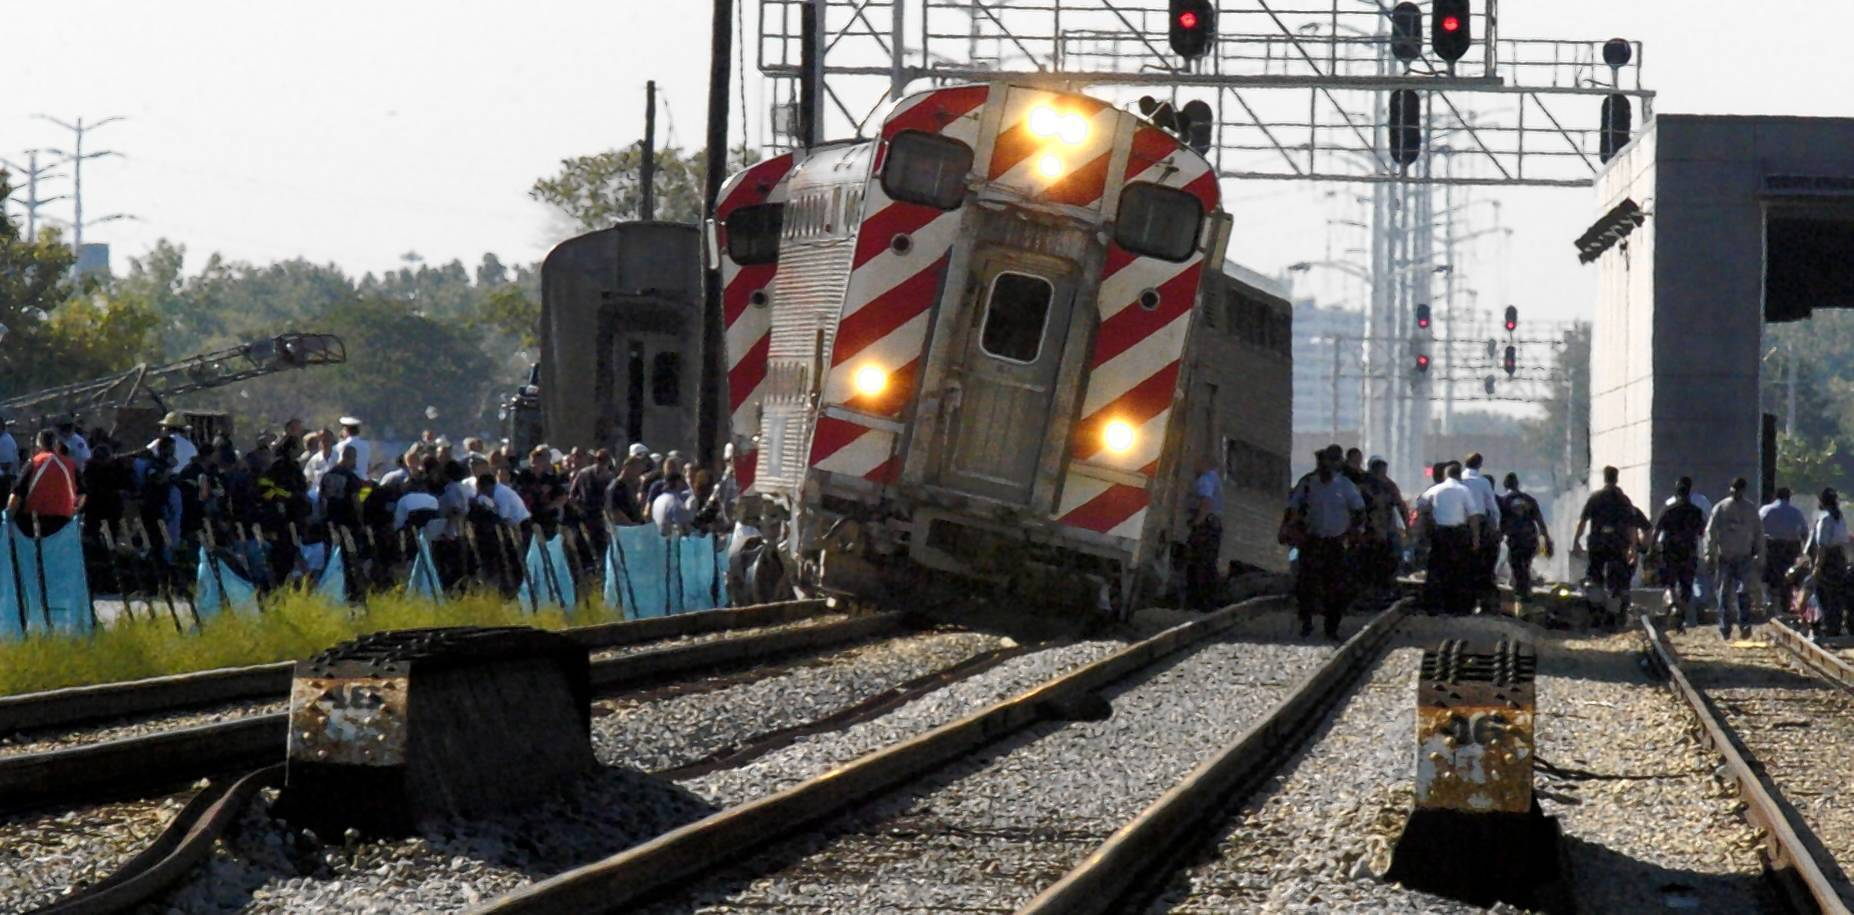 A 2005 Metra derailment on the Rock Island Line killed two passengers. The National Transportation Safety Board said the train was speeding and its engineer was inattentive. The agency said positive train control could have prevented the accident.